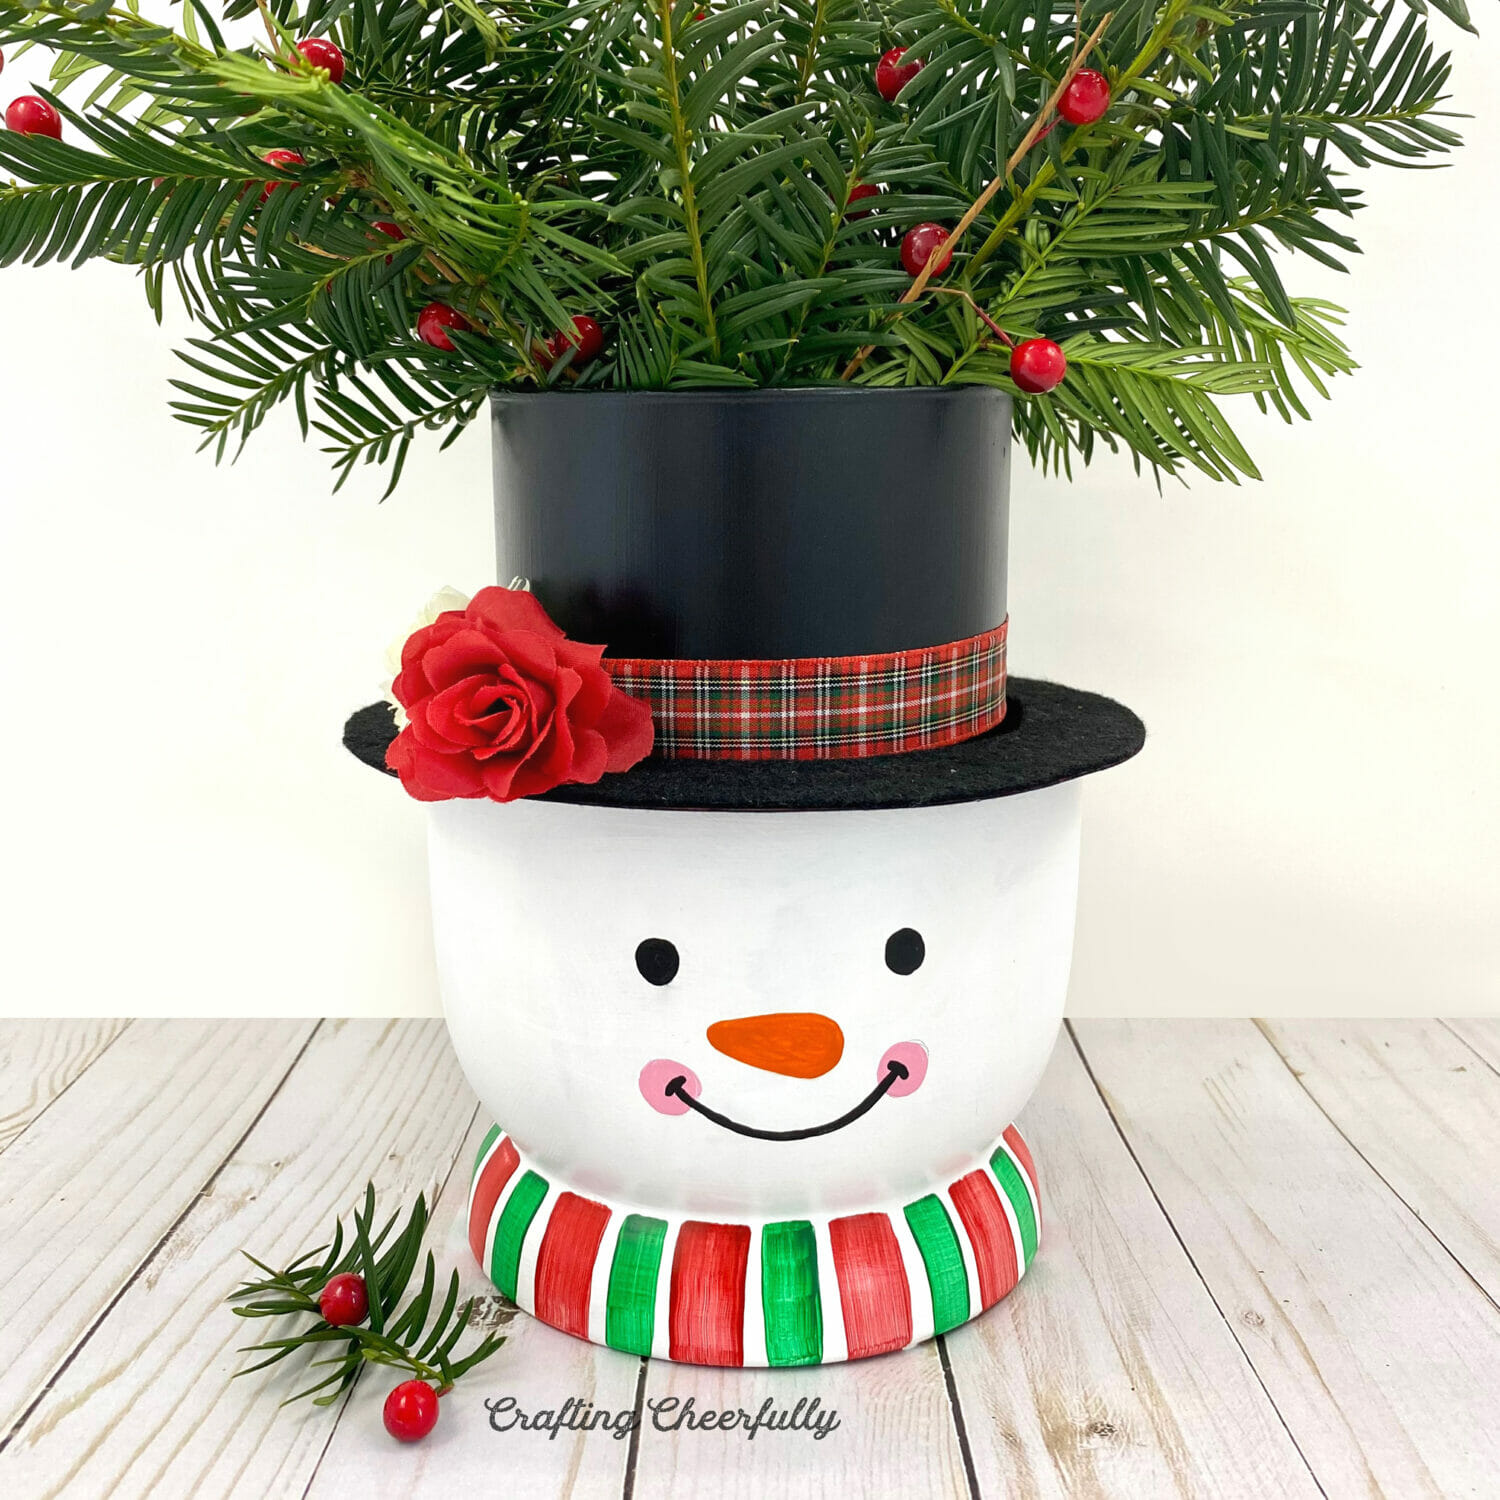 Snowman vase filled with evergreen branches sitting on a wooden table.